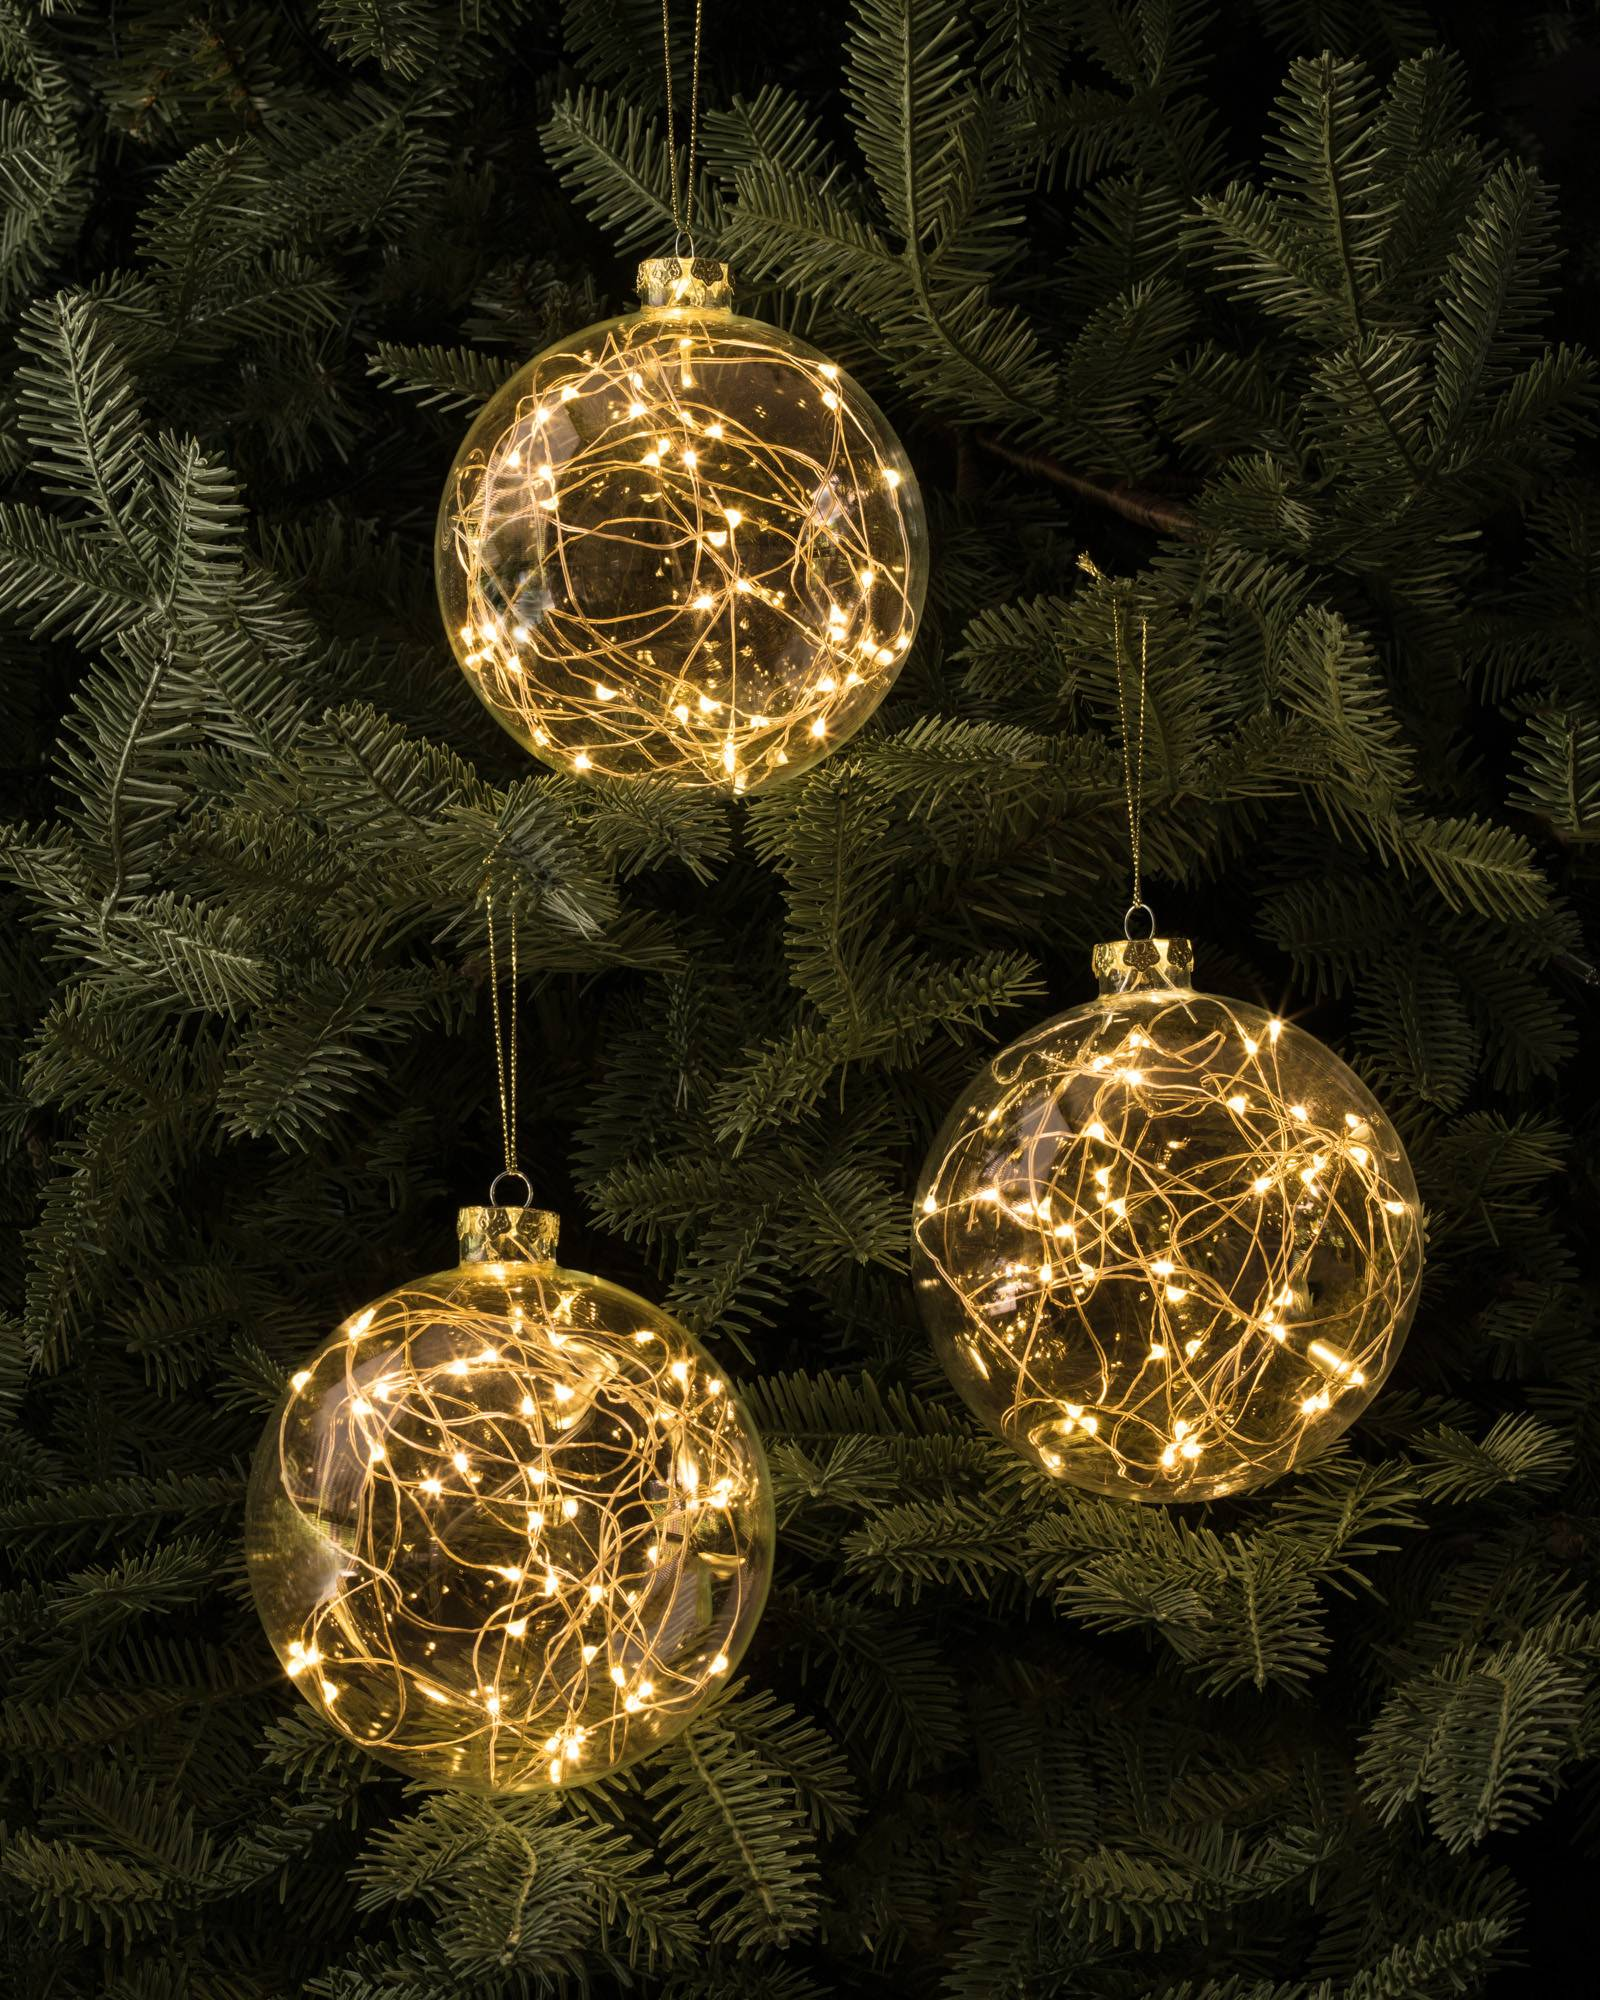 led fairy light ornaments set of 3 main - Christmas Decorations Led Ornaments